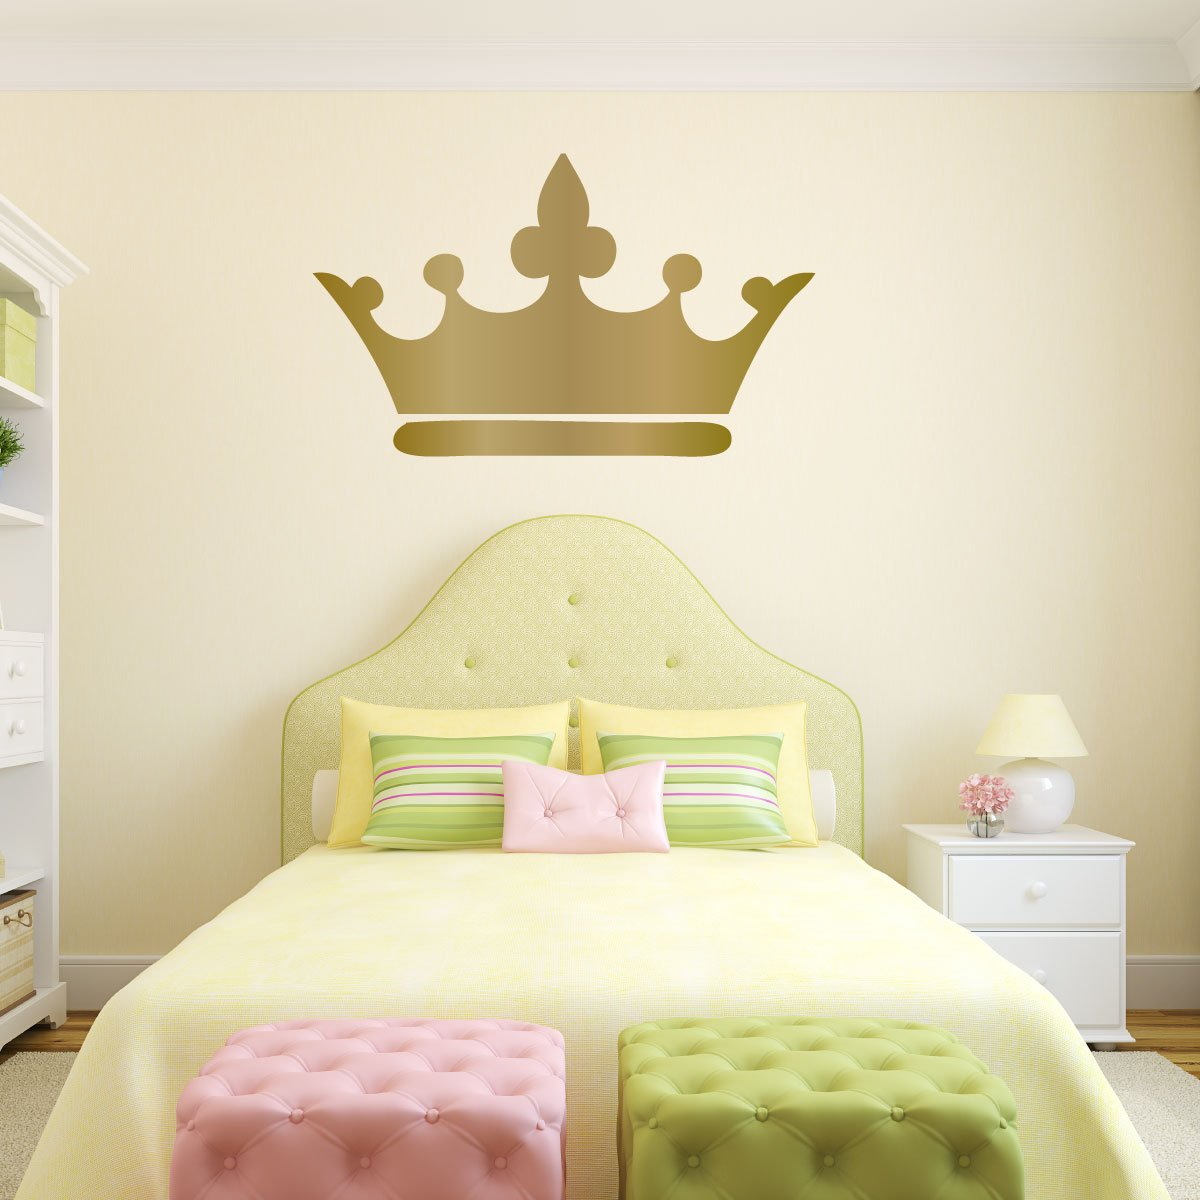 Amazon.com: Princess Crown Wall Decal - 25in x 15in Metallic Gold ...